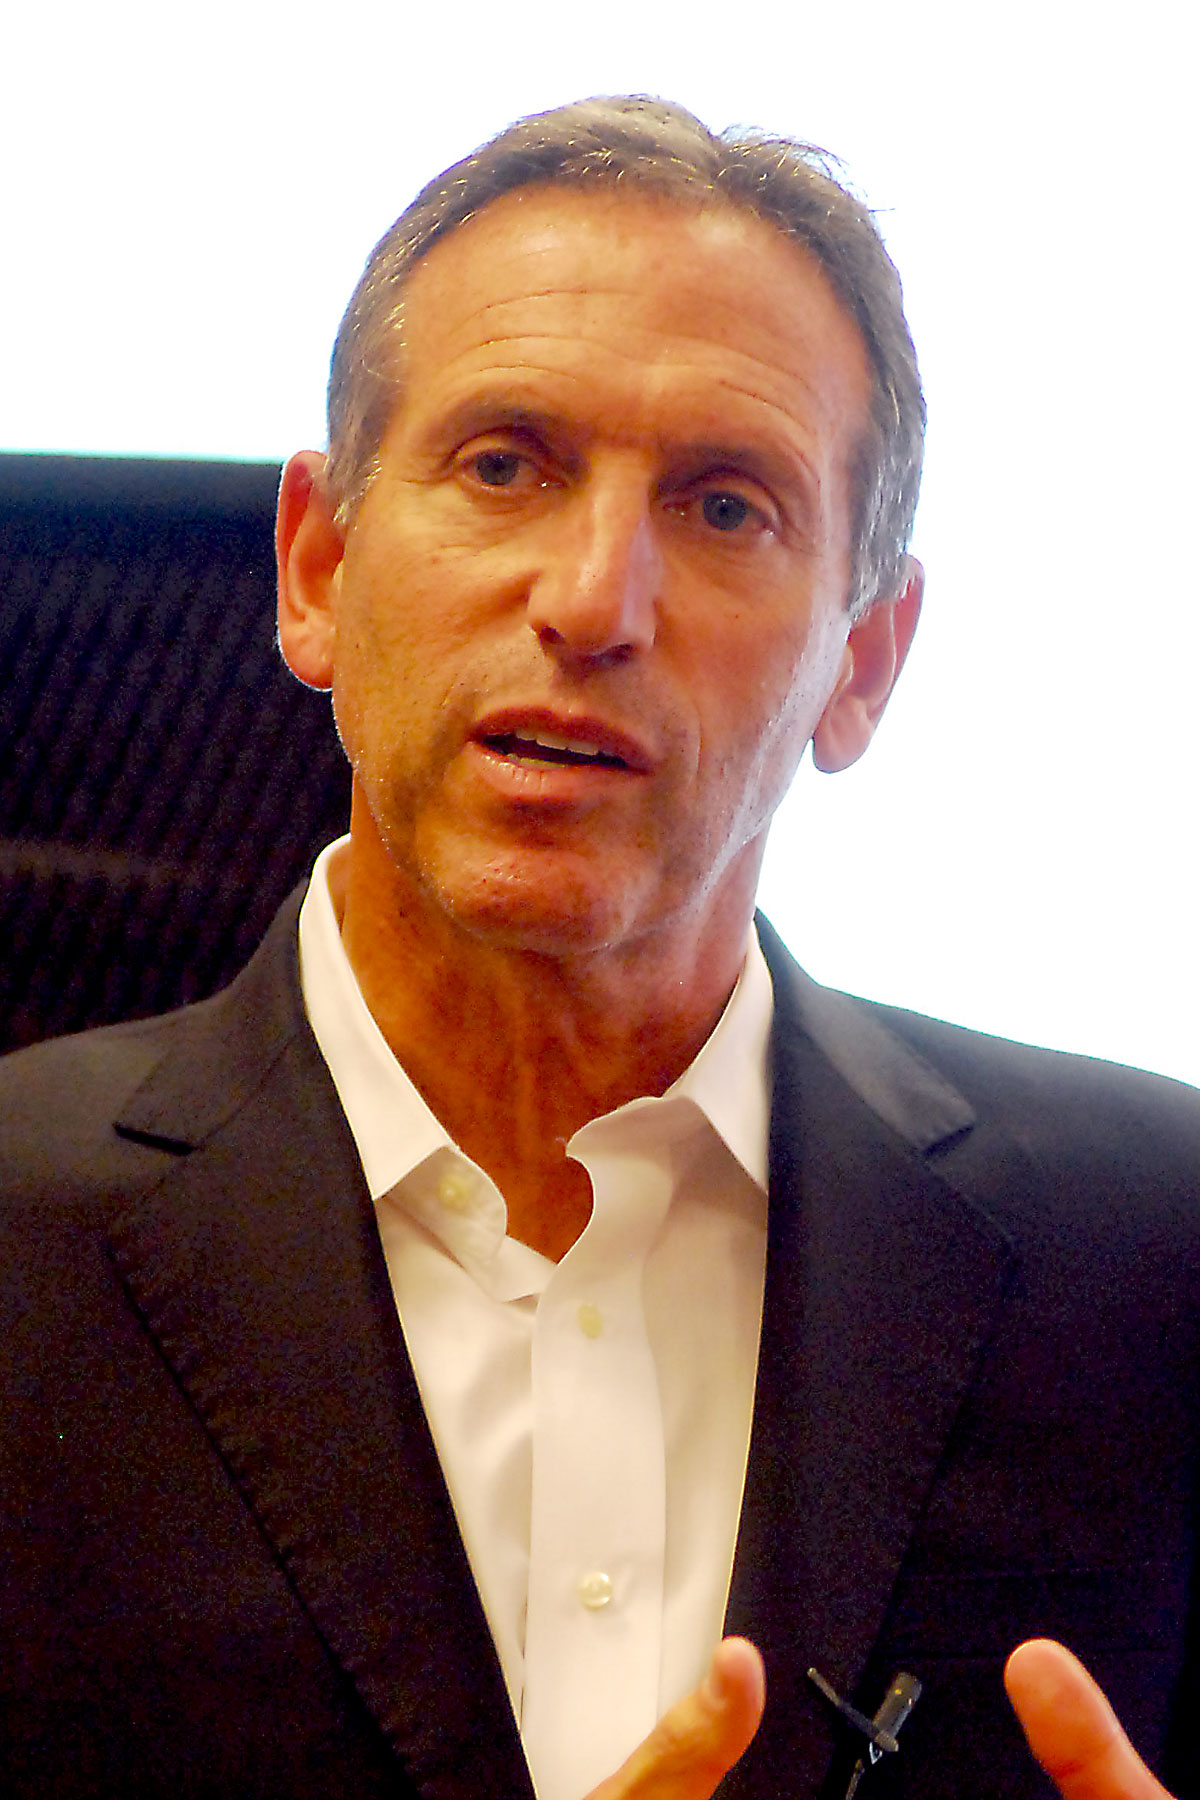 The 65-year old son of father (?) and mother(?) Howard Schultz in 2018 photo. Howard Schultz earned a  million dollar salary - leaving the net worth at 2500 million in 2018